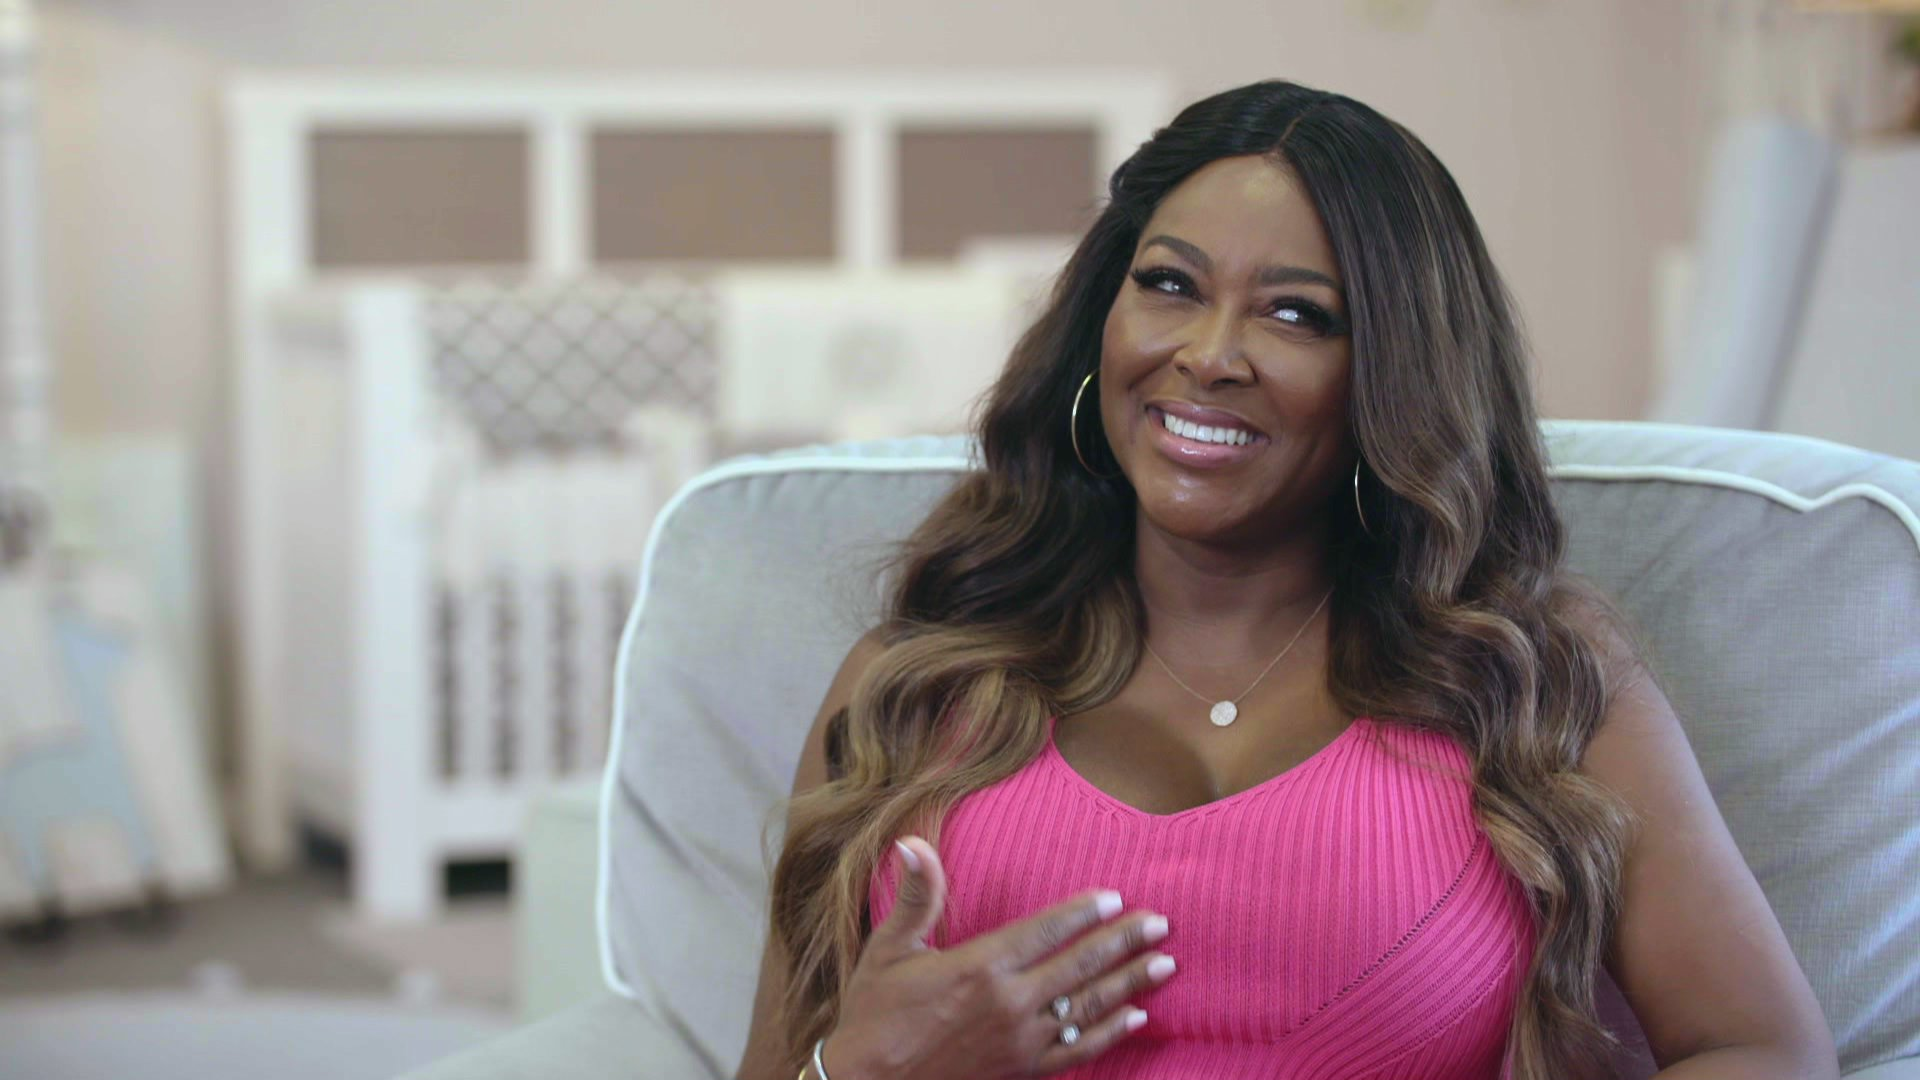 'Kenya Moore Hair' Is Casting Users For The New Campaign